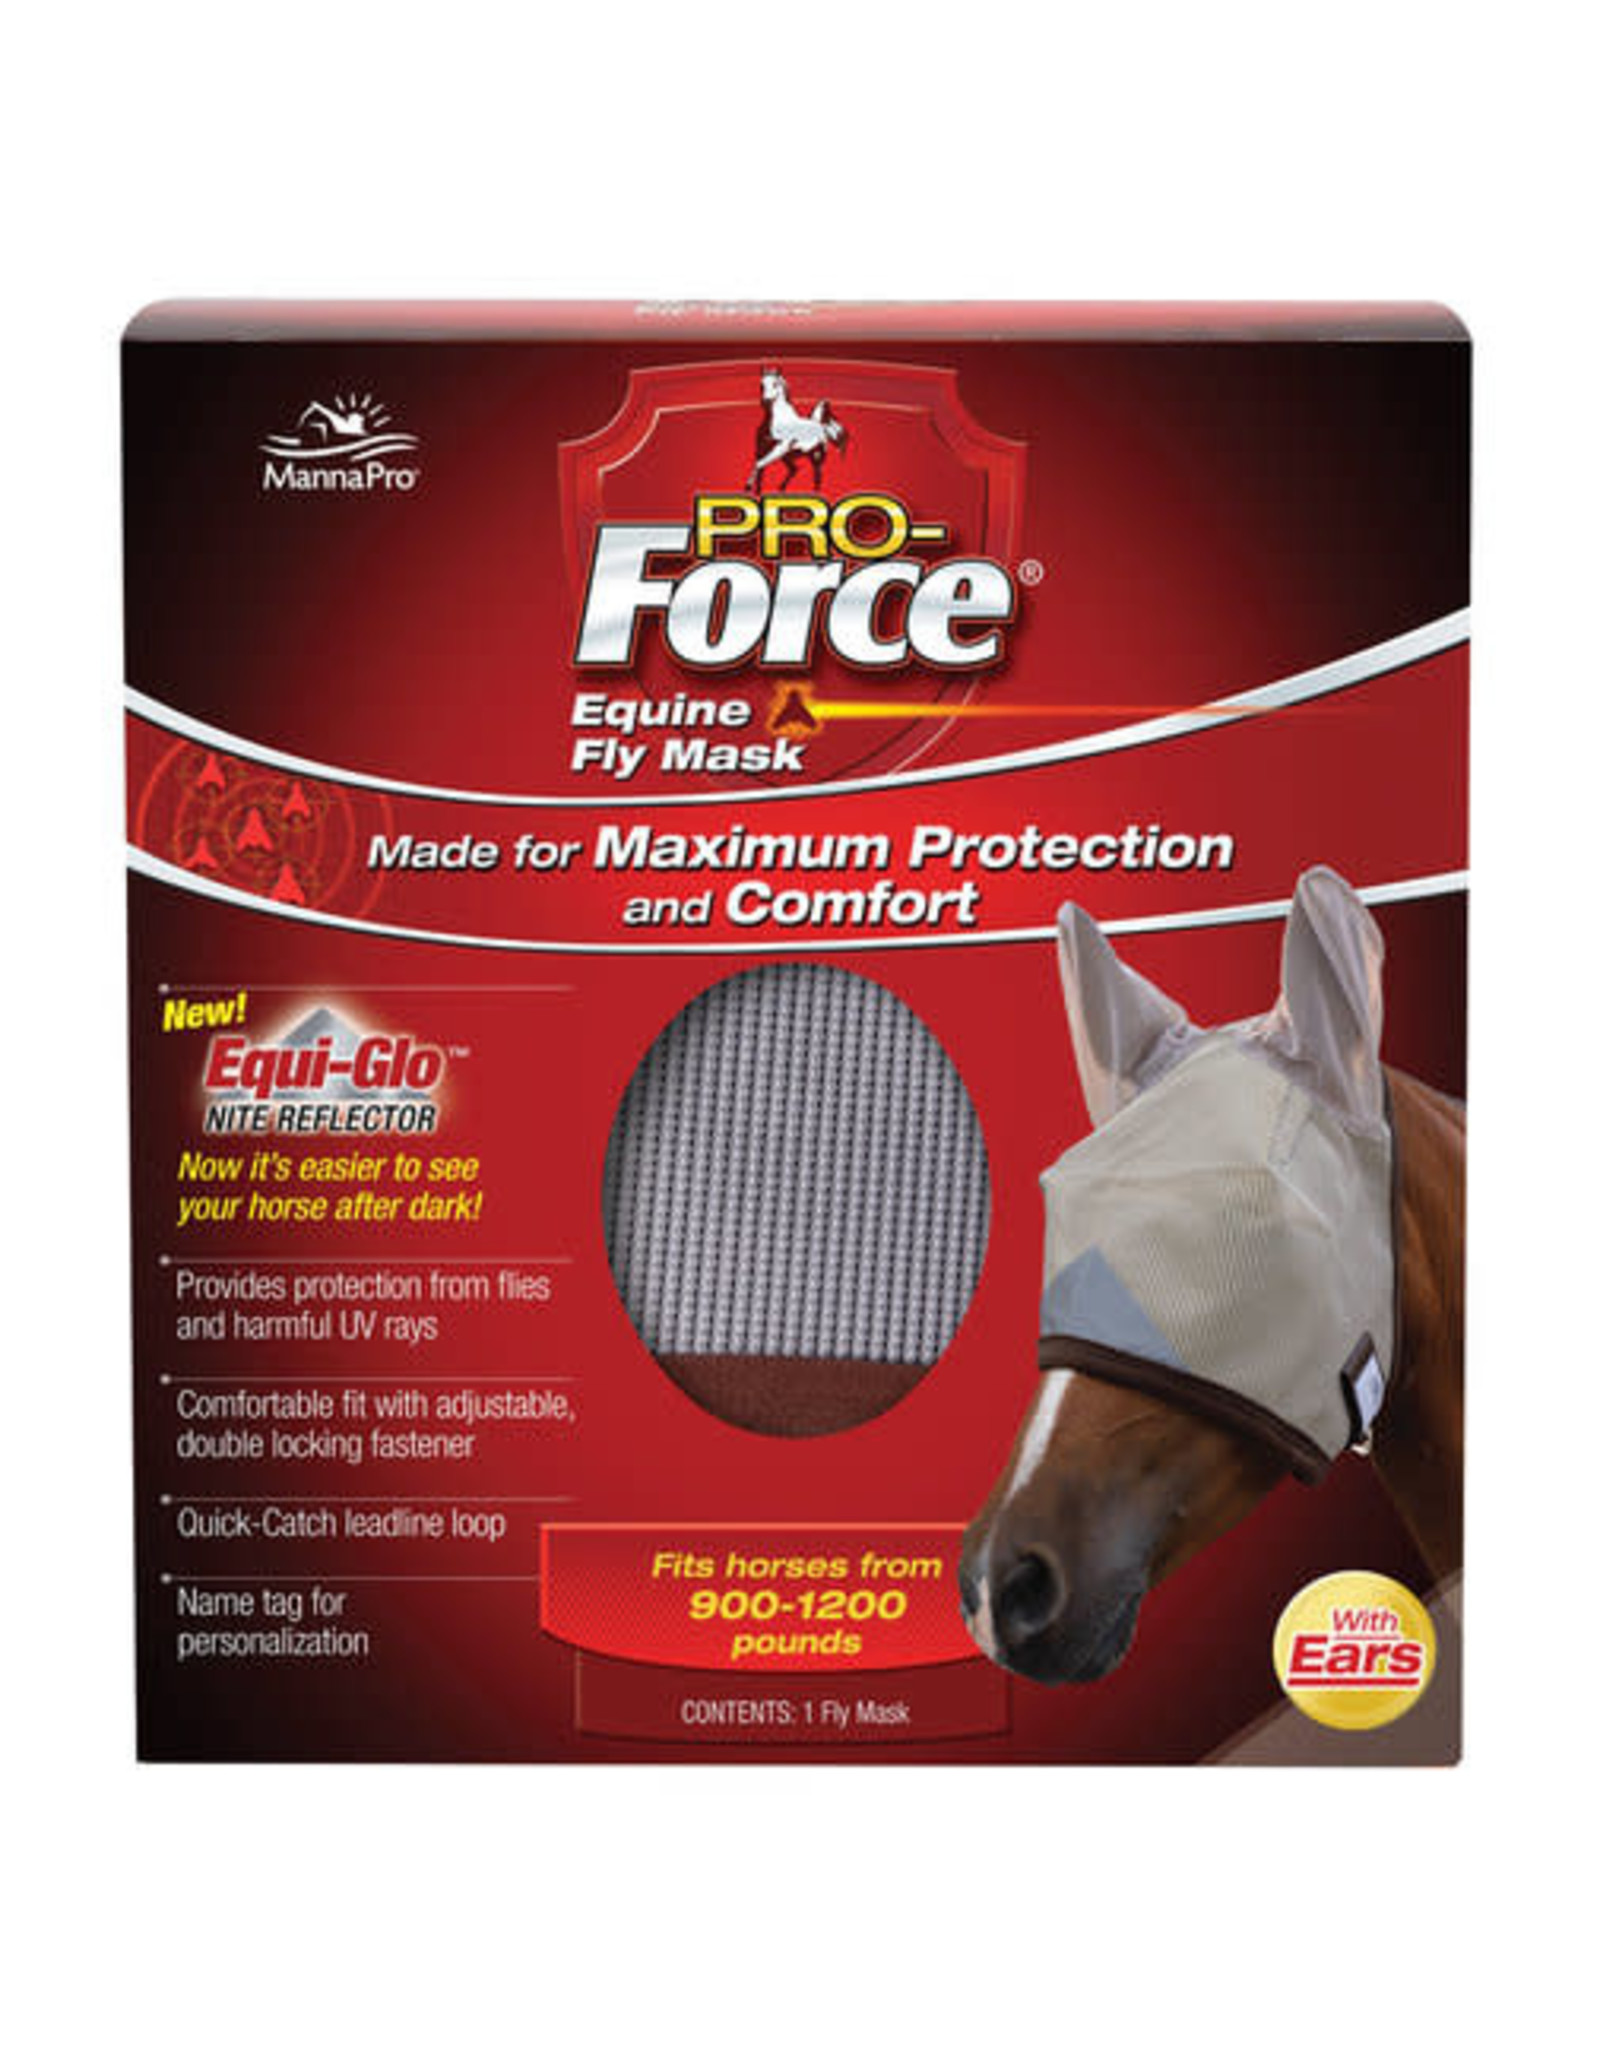 Pro Force Fly Mask with Ears